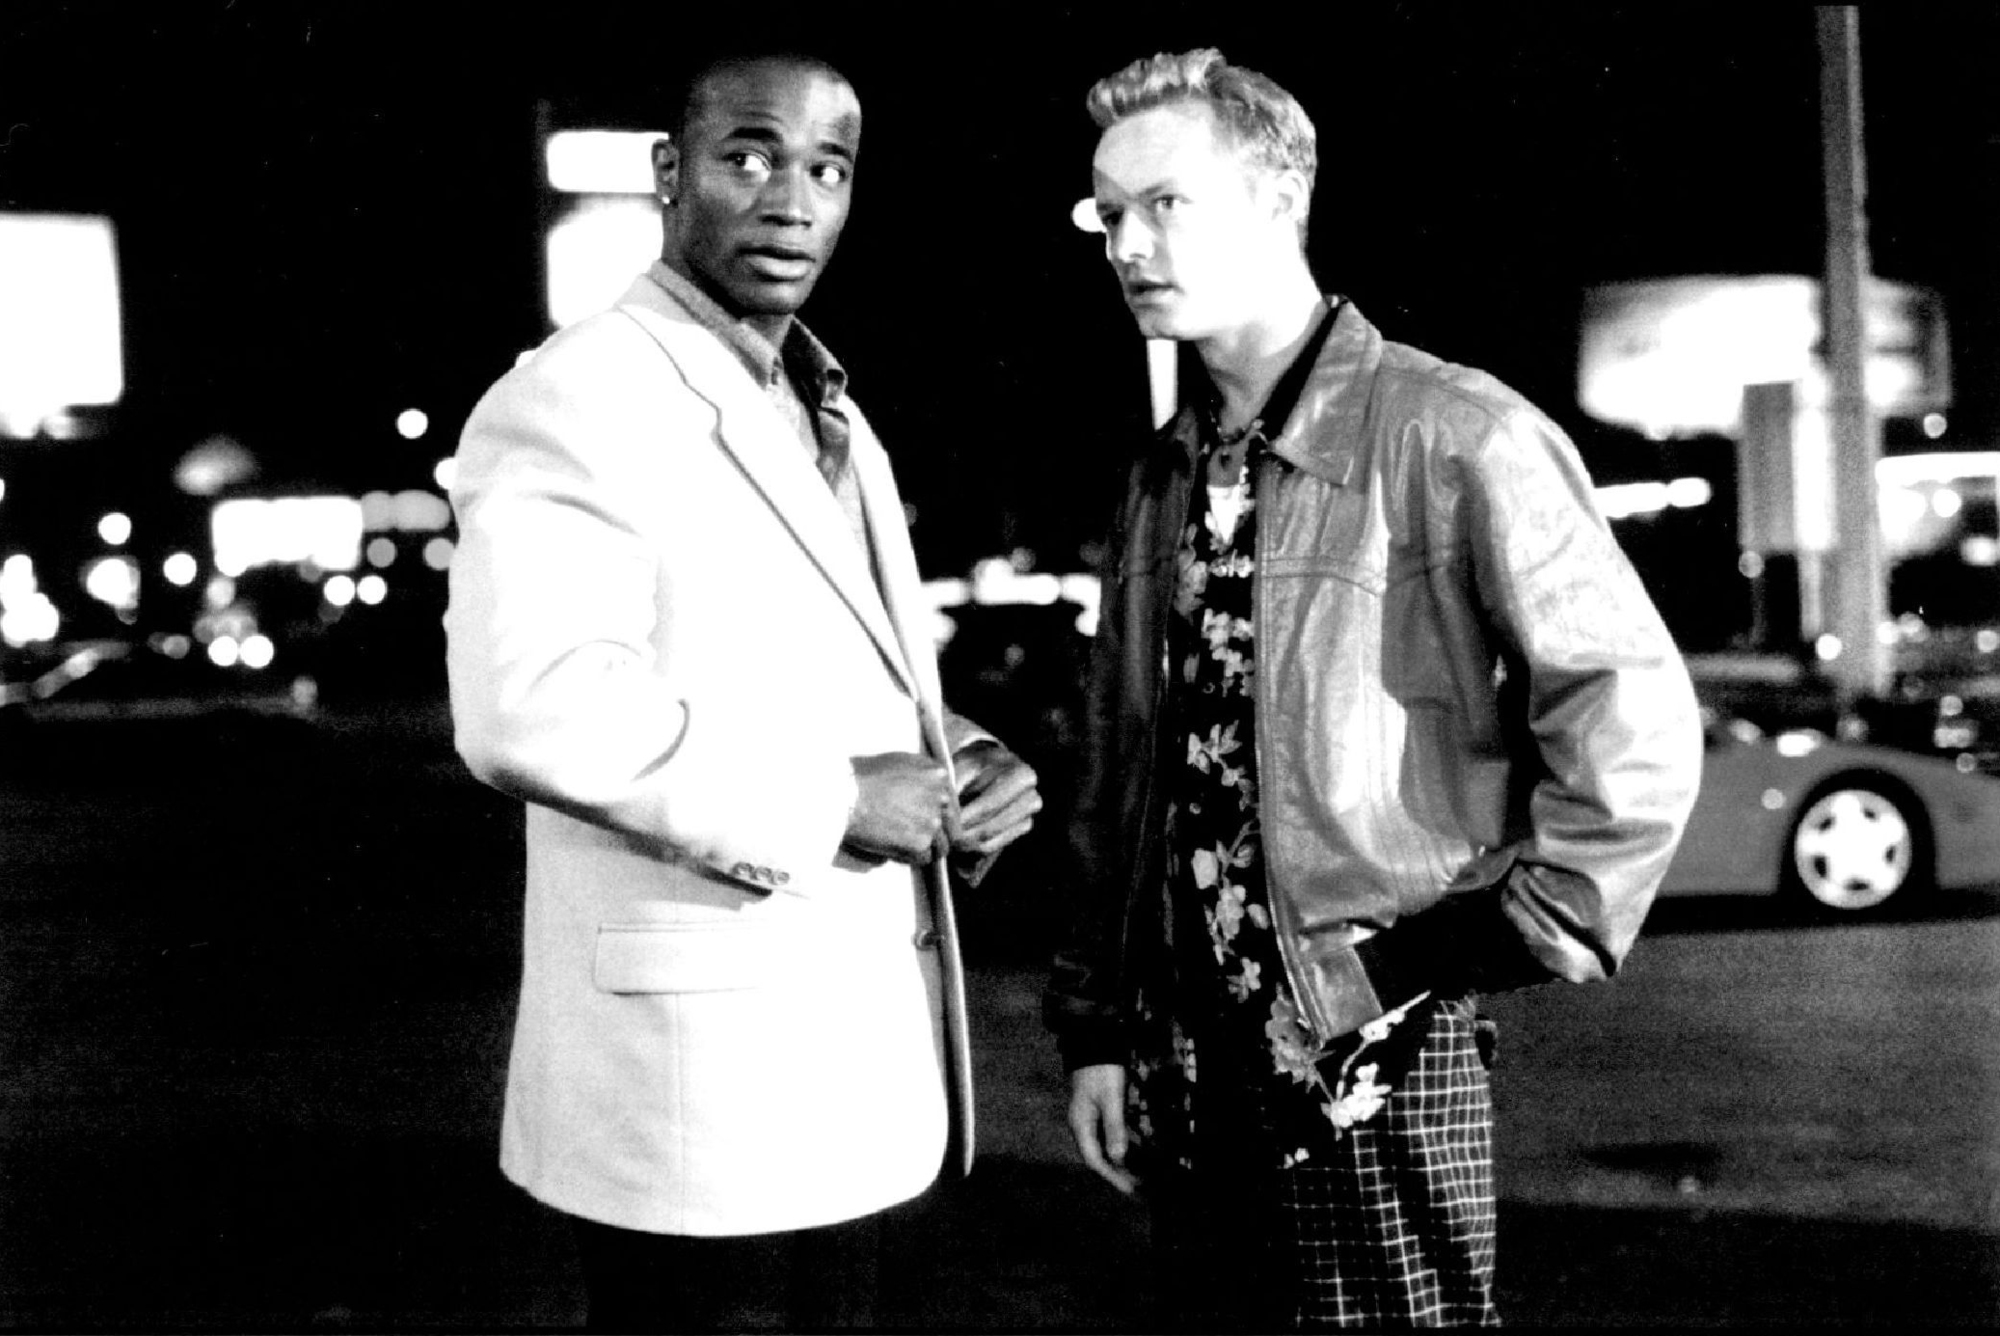 Taye Diggs and Desmond Askew in 'Go.'